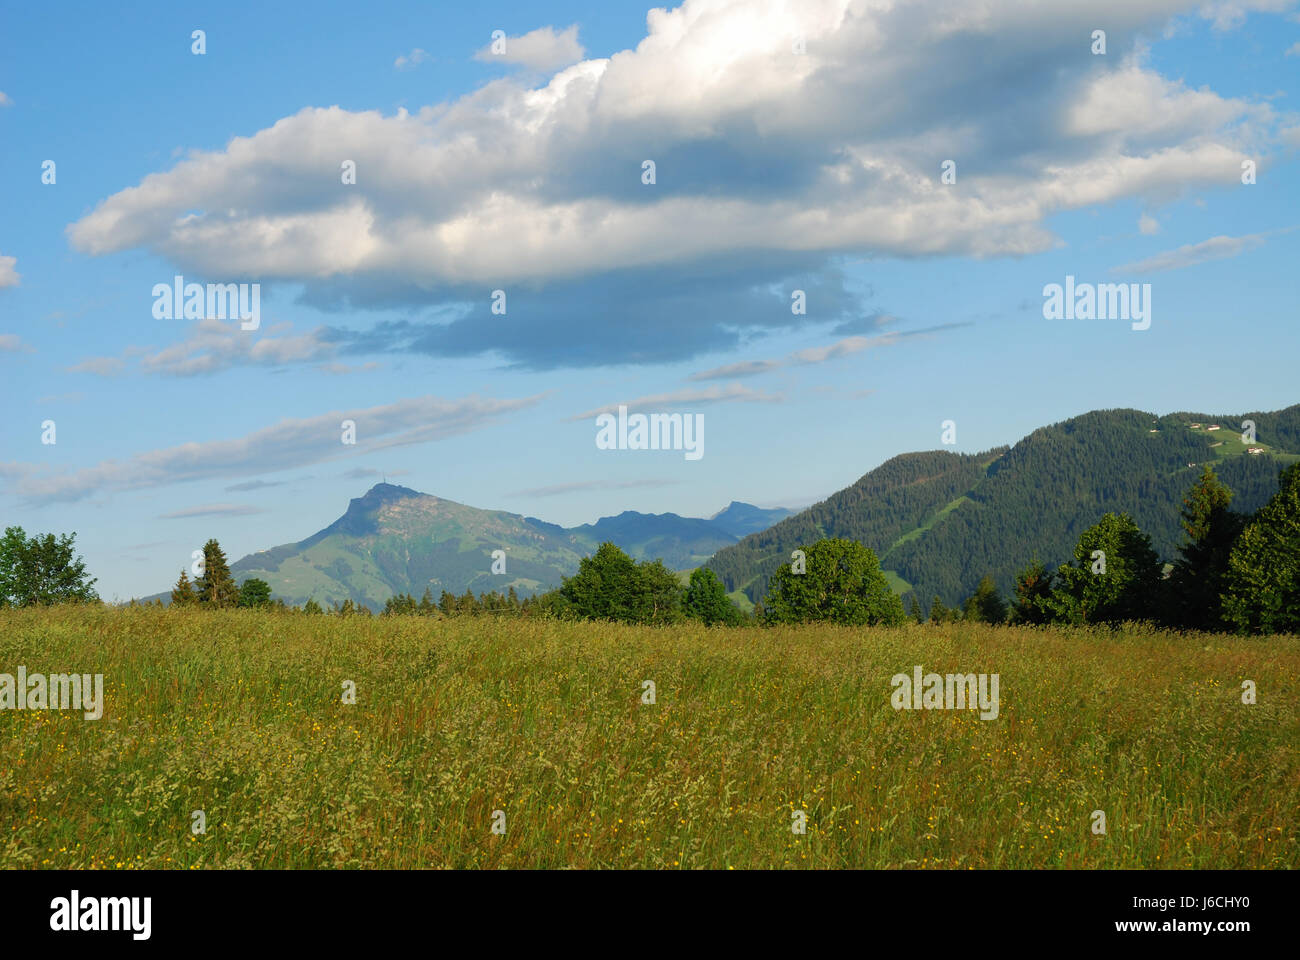 hill mountains austria idyll high country scenery countryside nature meadow - Stock Image